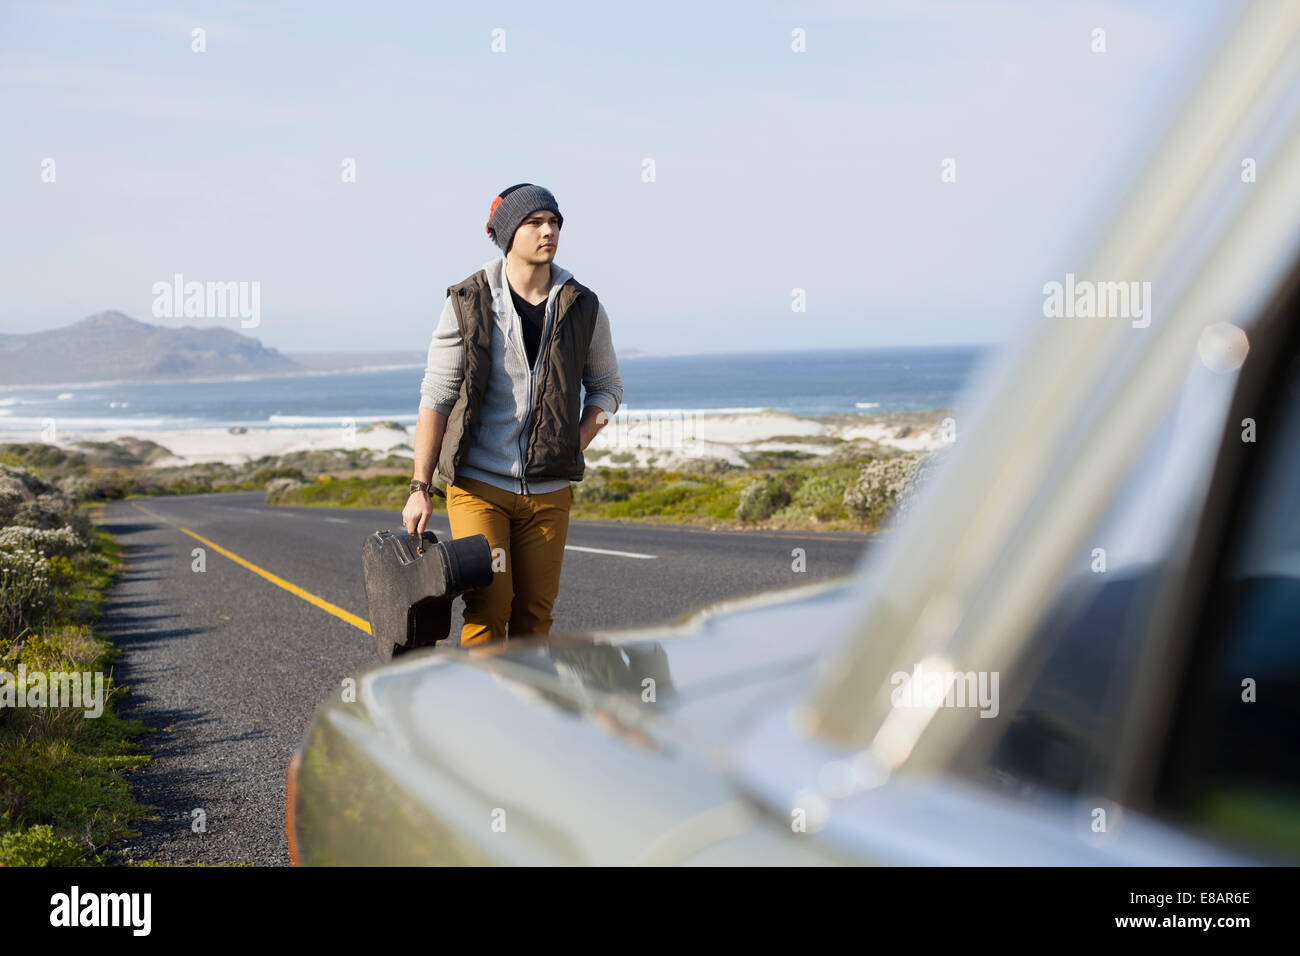 Young man behind parked car with guitar case, Cape Town, Western Cape, South Africa - Stock Image